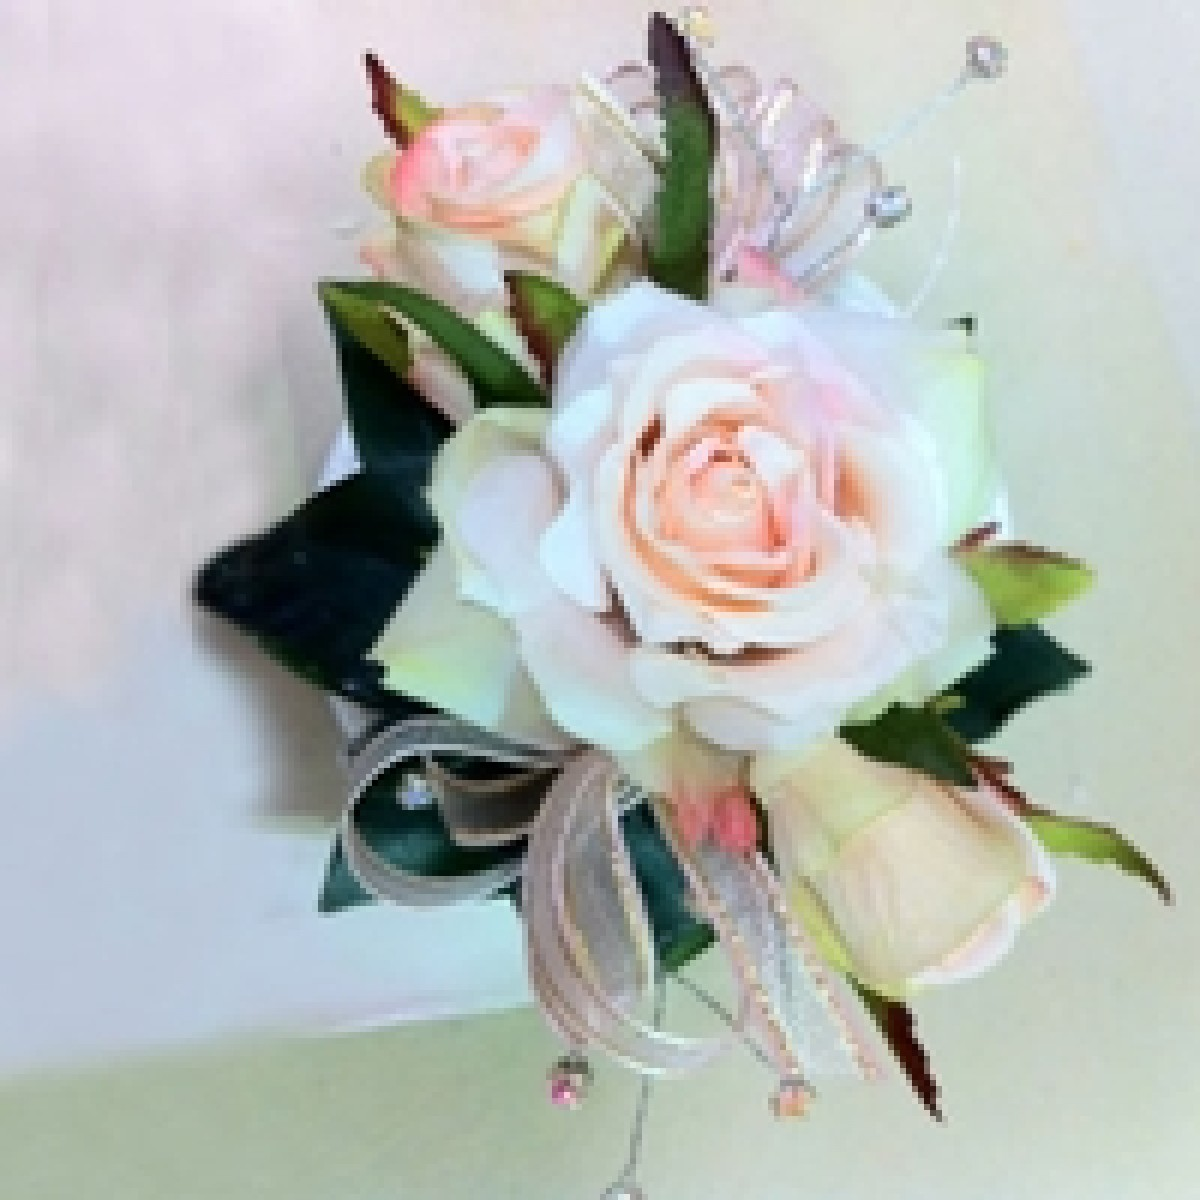 Wrist Corsage Catalogue Artificial Trees And Flowers Wholesale Melbourne Ribbons Vases